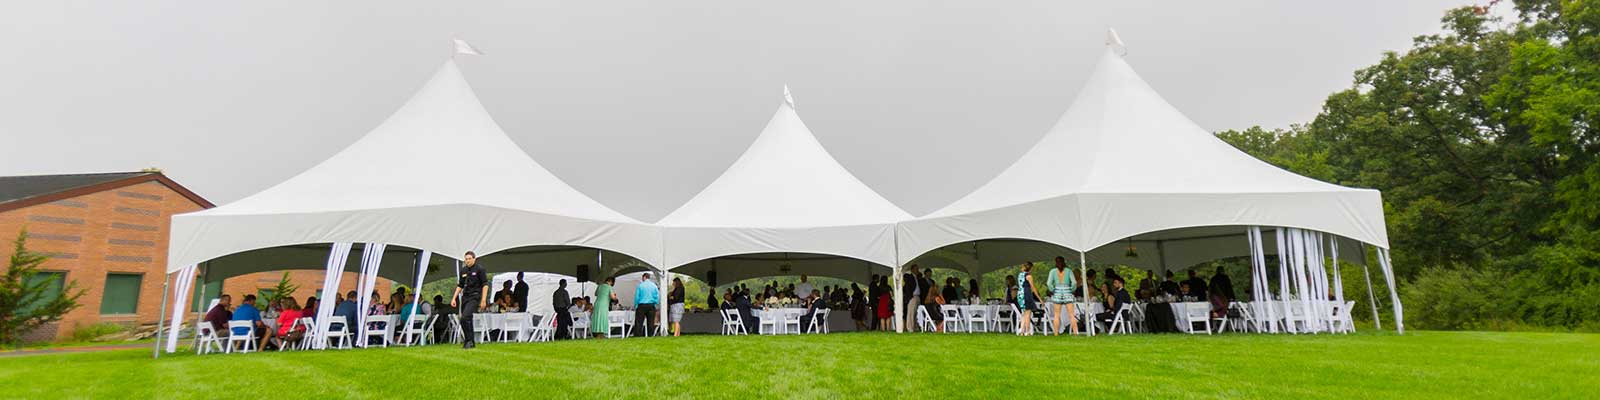 Tent rentals in Livingston County and Washtenaw County